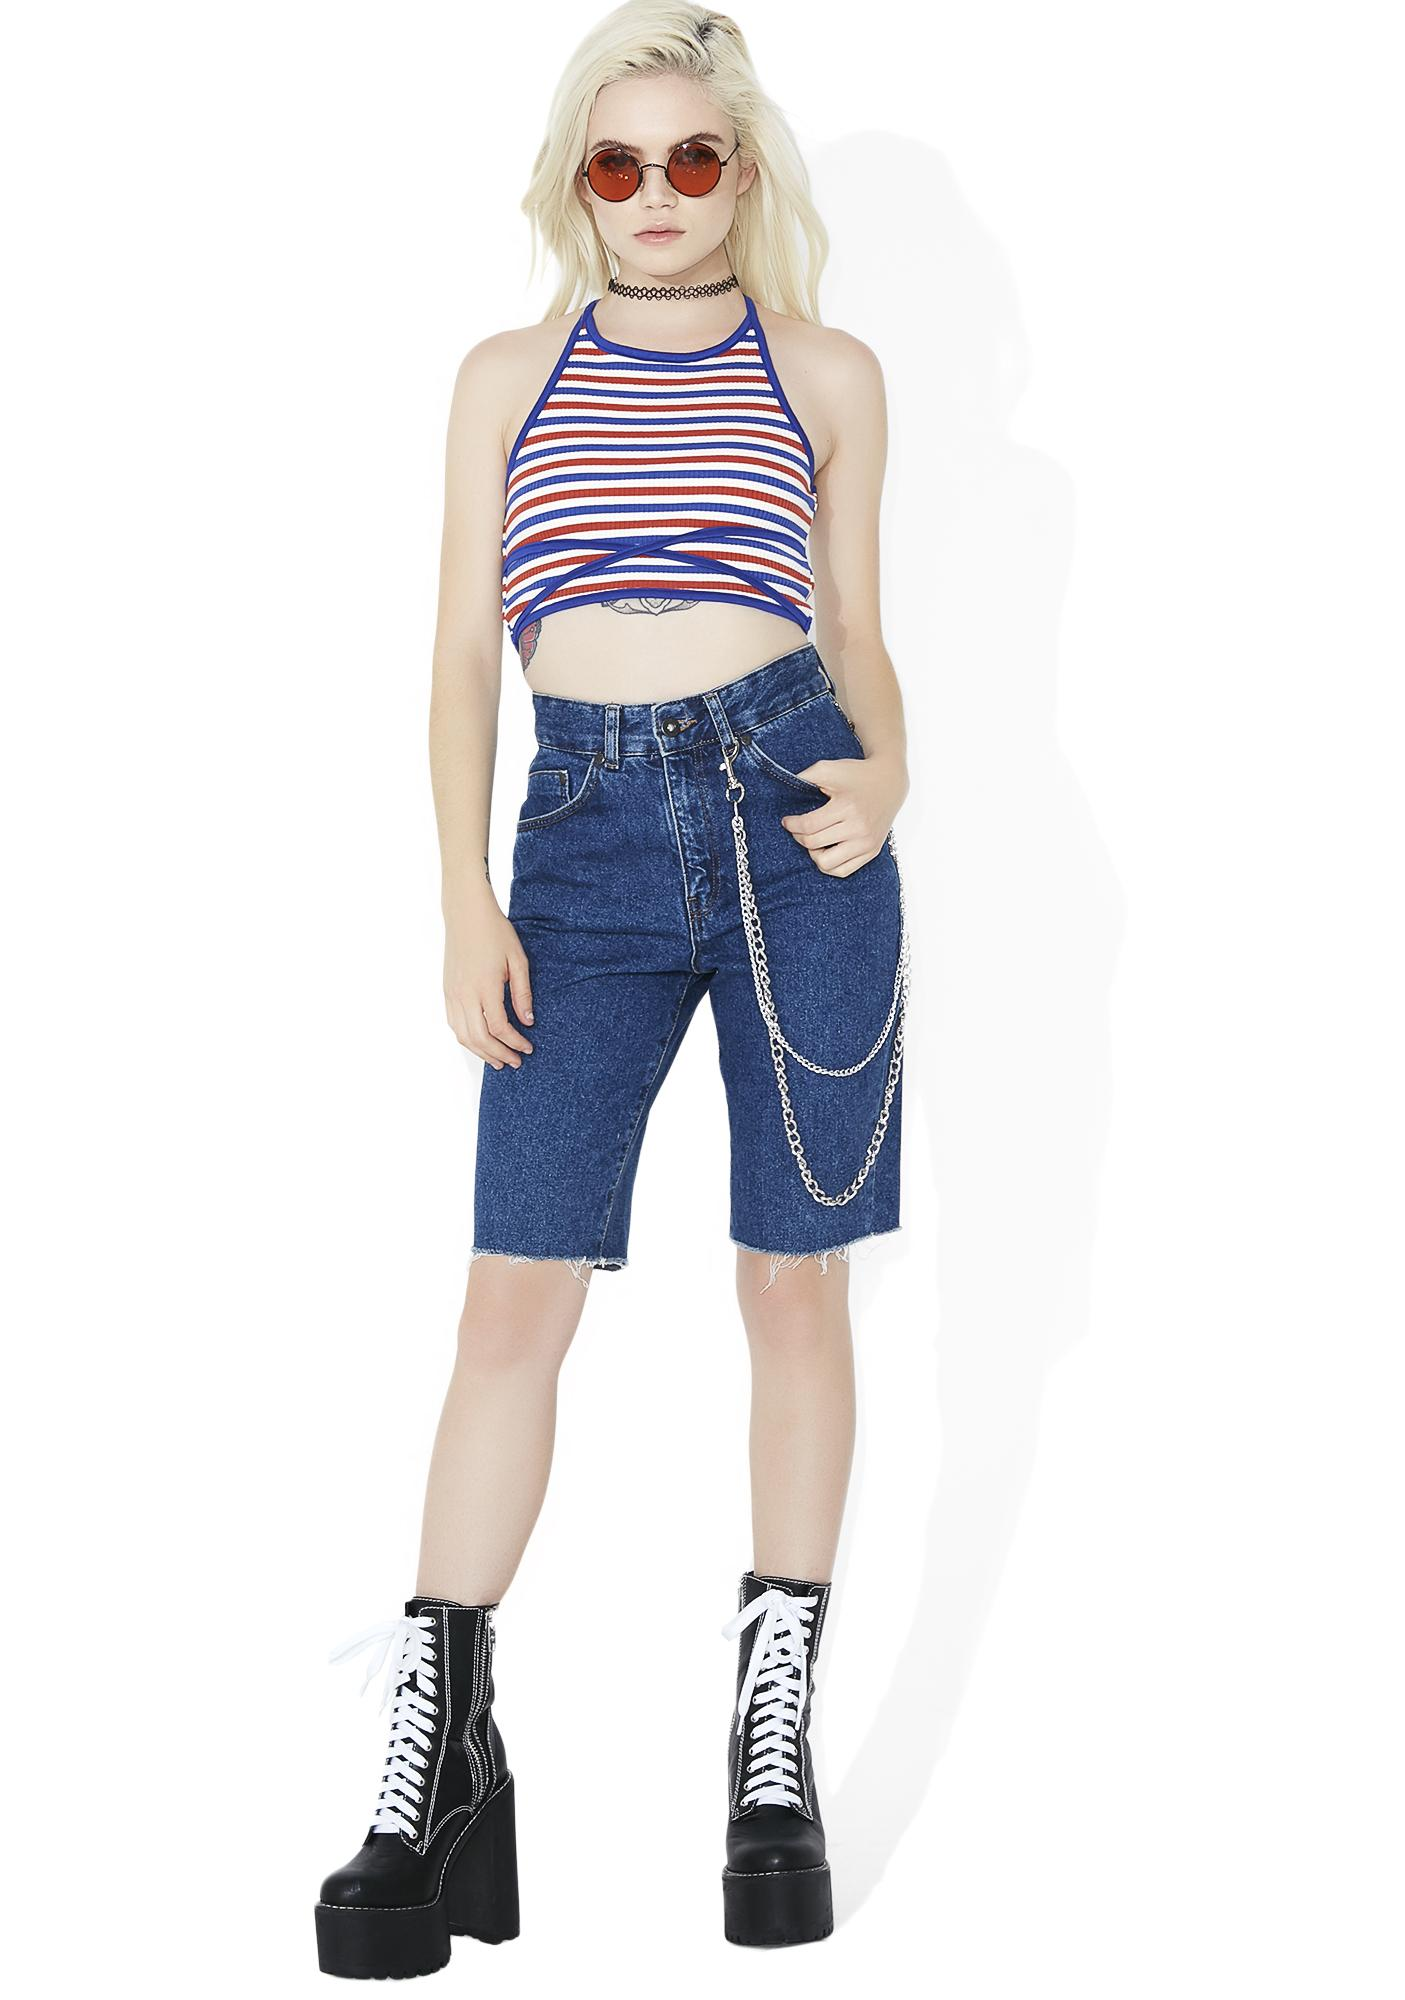 Rosalita Lace-Up Crop Top